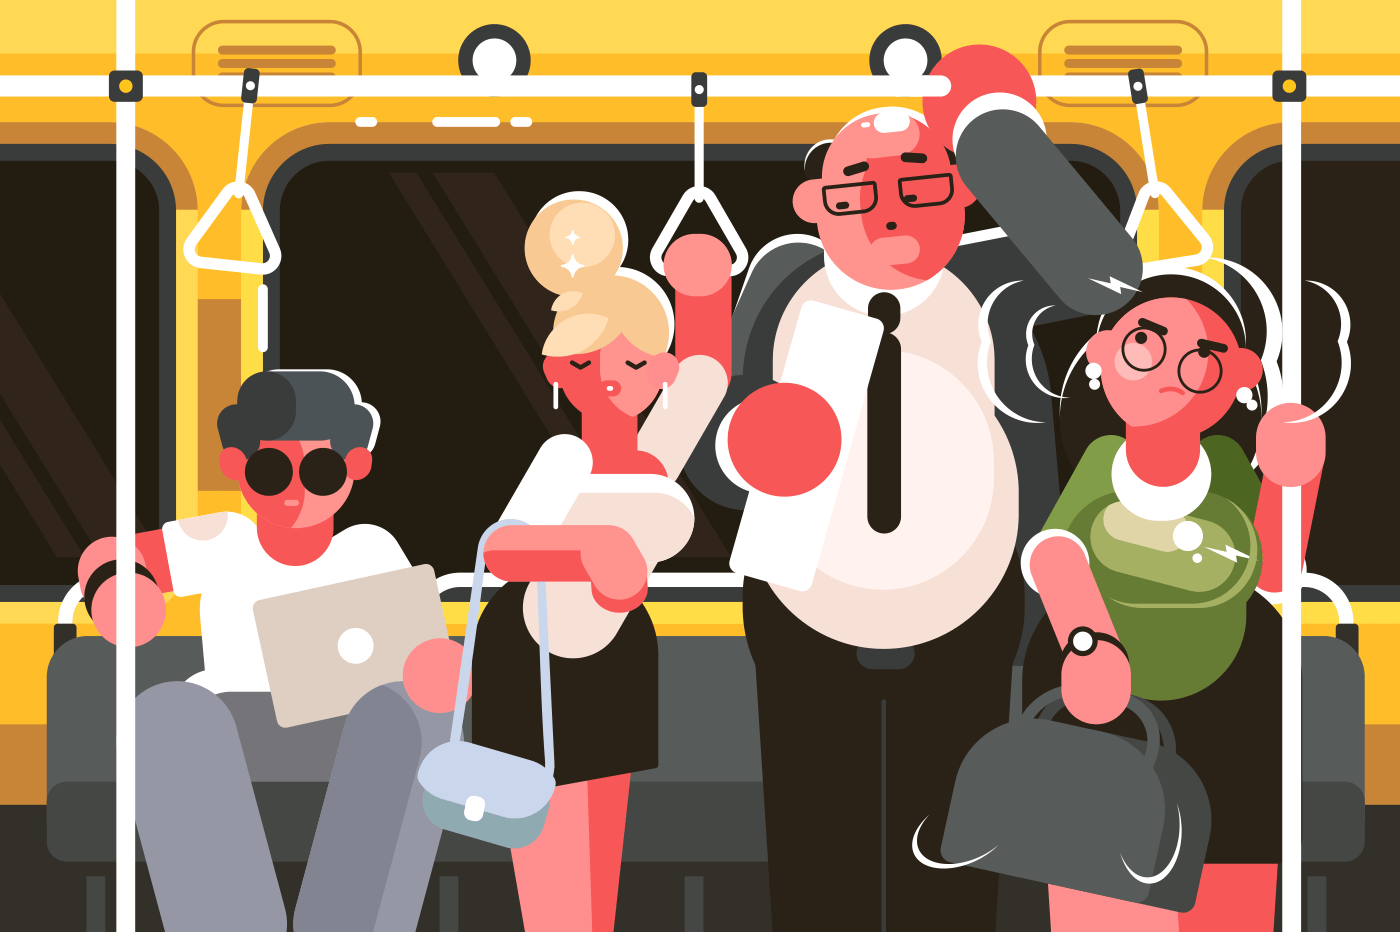 Passengers in subway car. Rush hour in public transport. Vector illustration